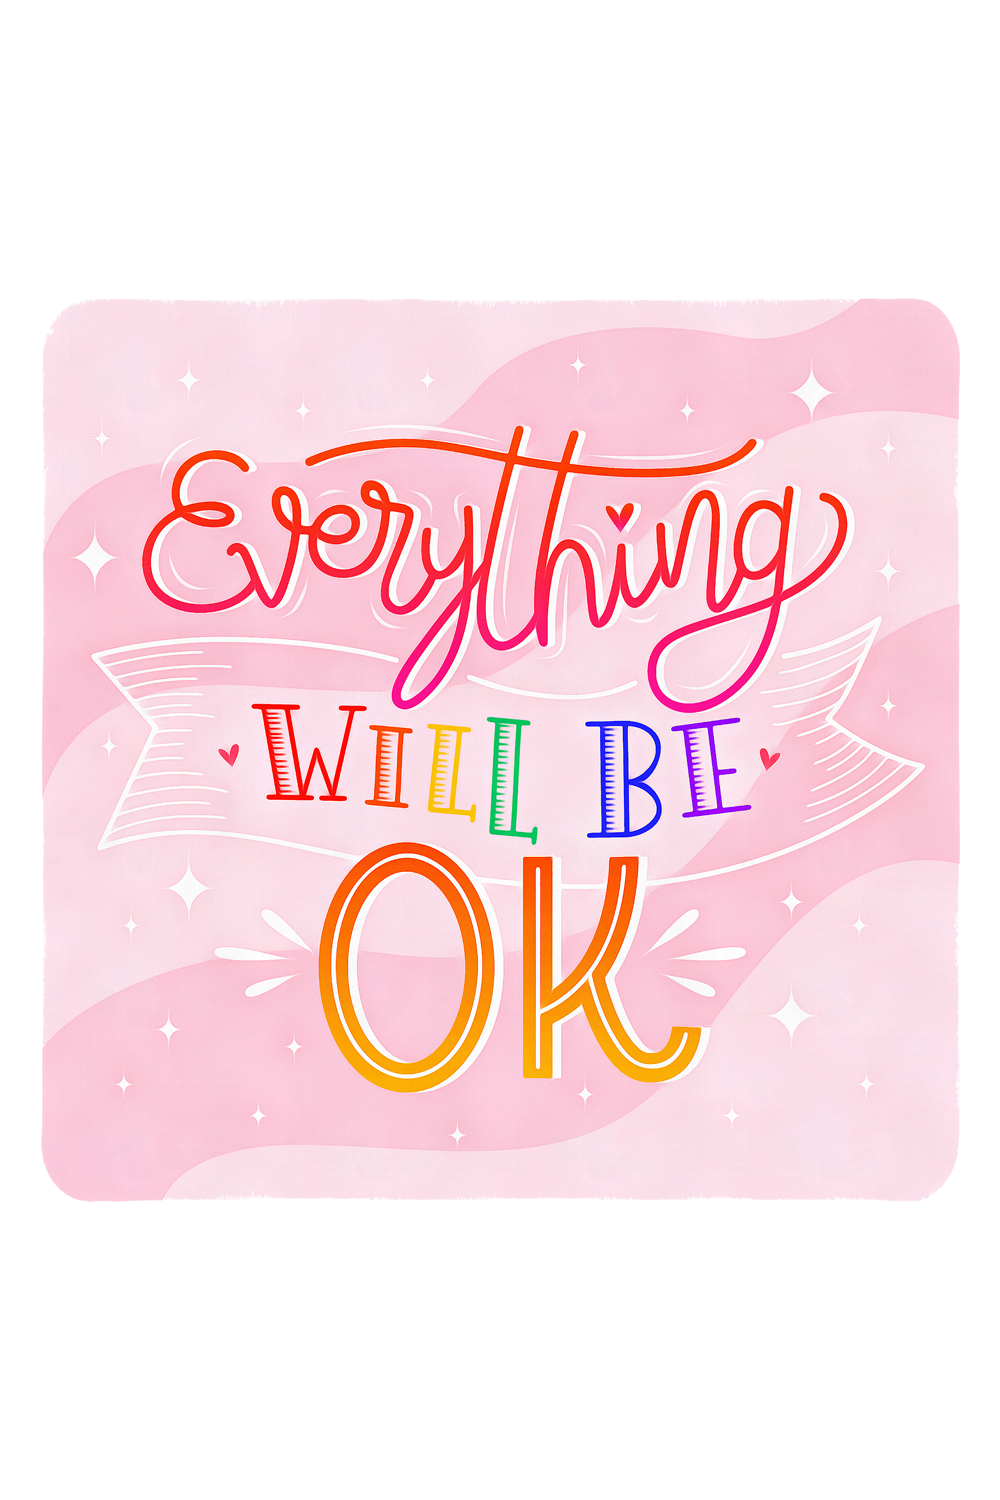 Everything Will Be OK - Quotes Inspirational, Motivational and Life Enhancing